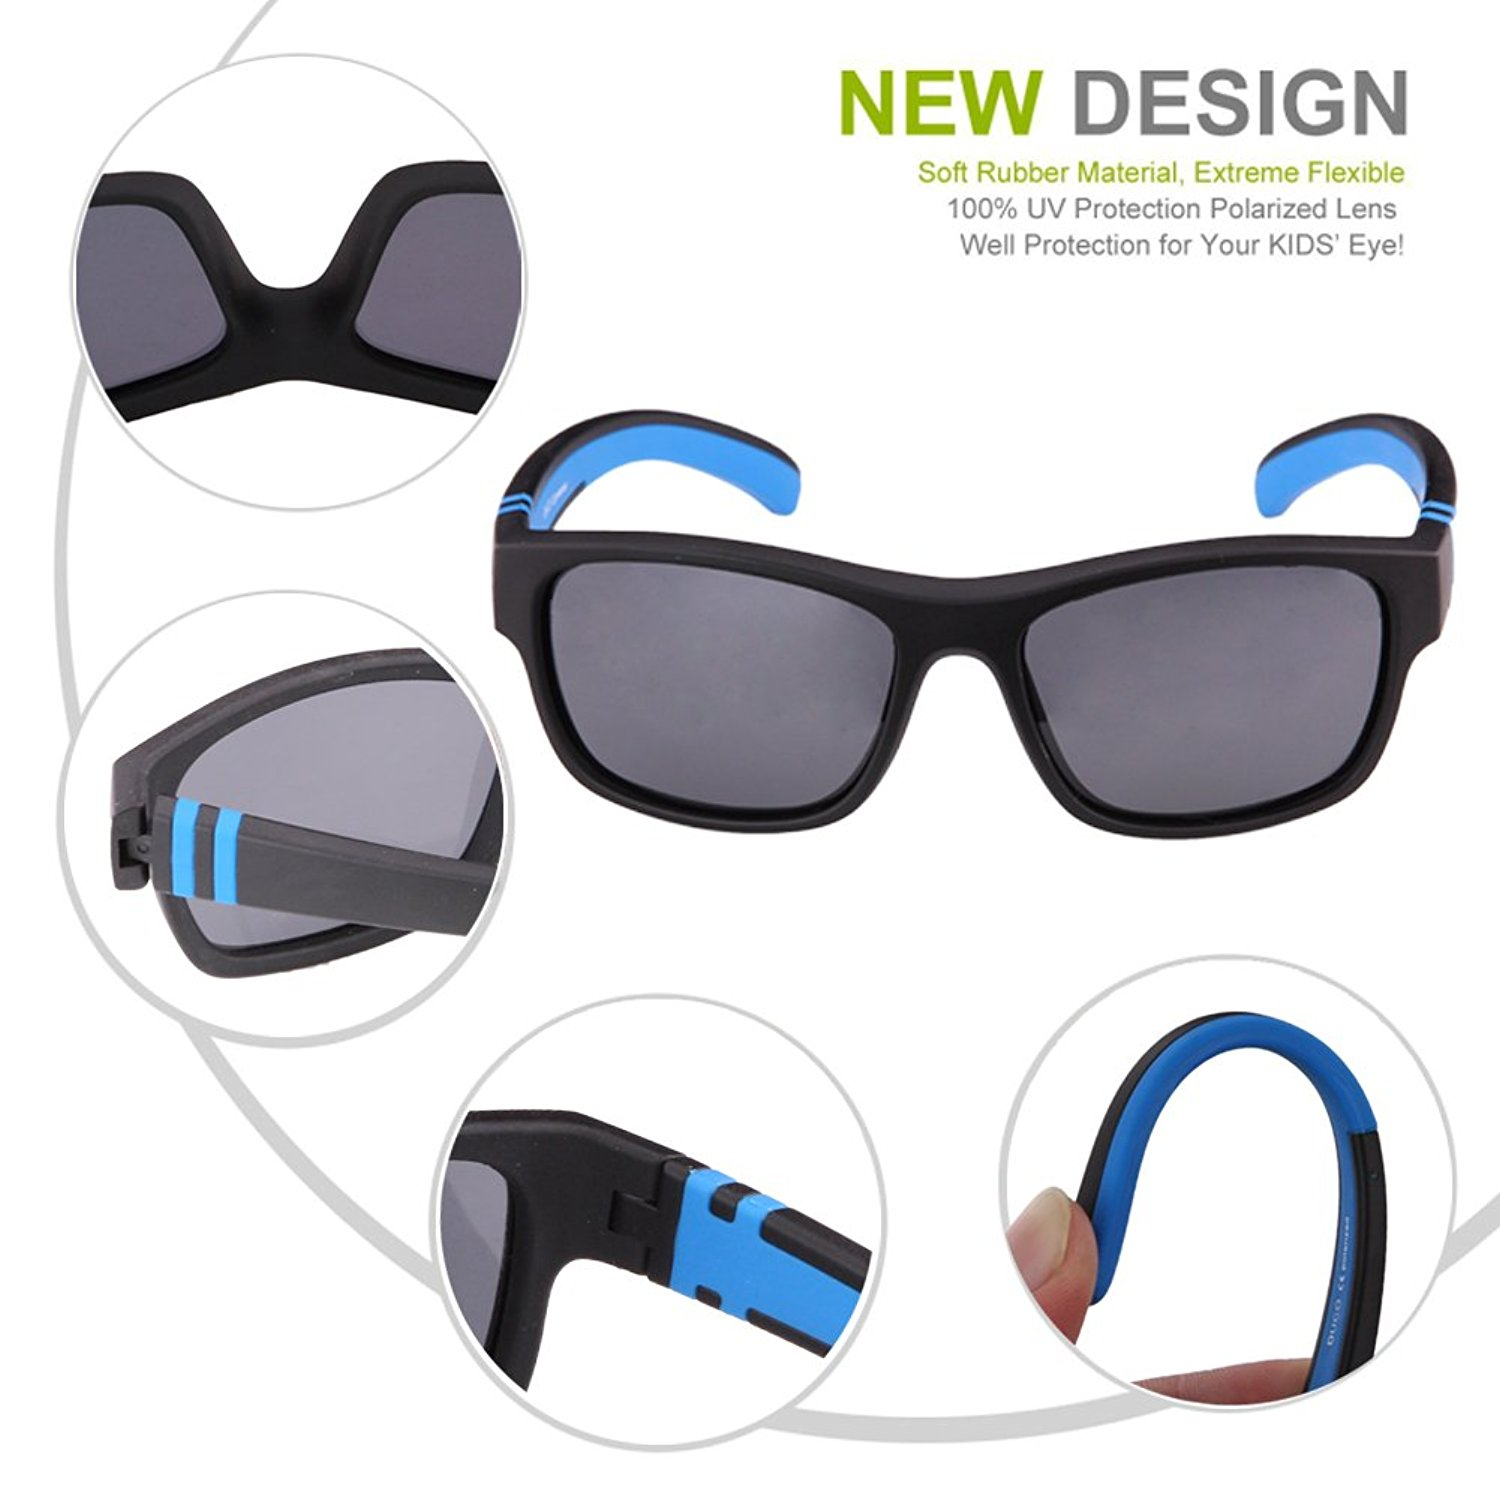 Kids with sunglasses clipart vector royalty free download Amazon.com: Duco Kids Sports Style Polarized Sunglasses Rubber ... vector royalty free download